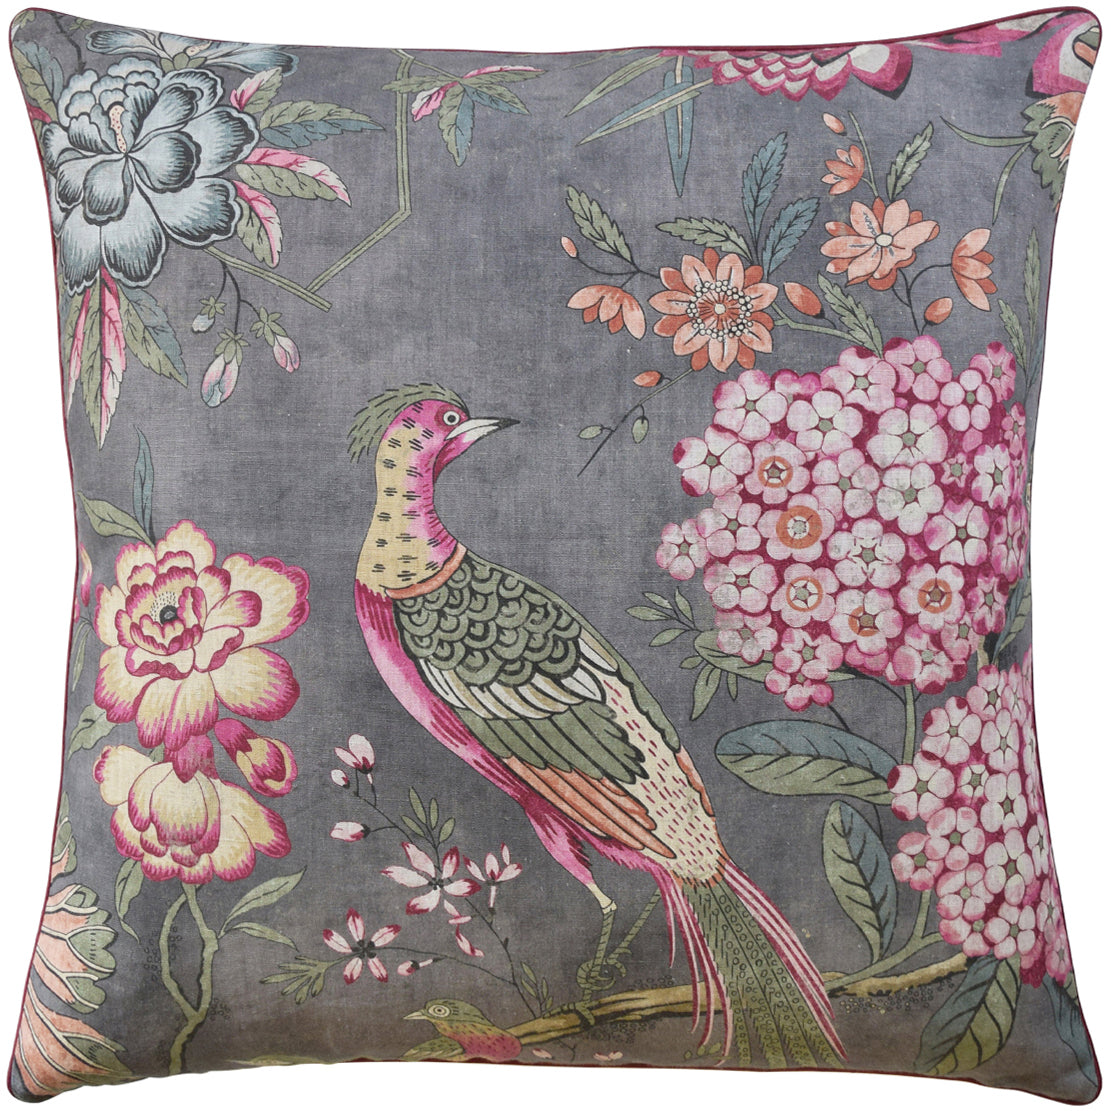 Ryan Studio Pillows Villeneuve, Charcoal